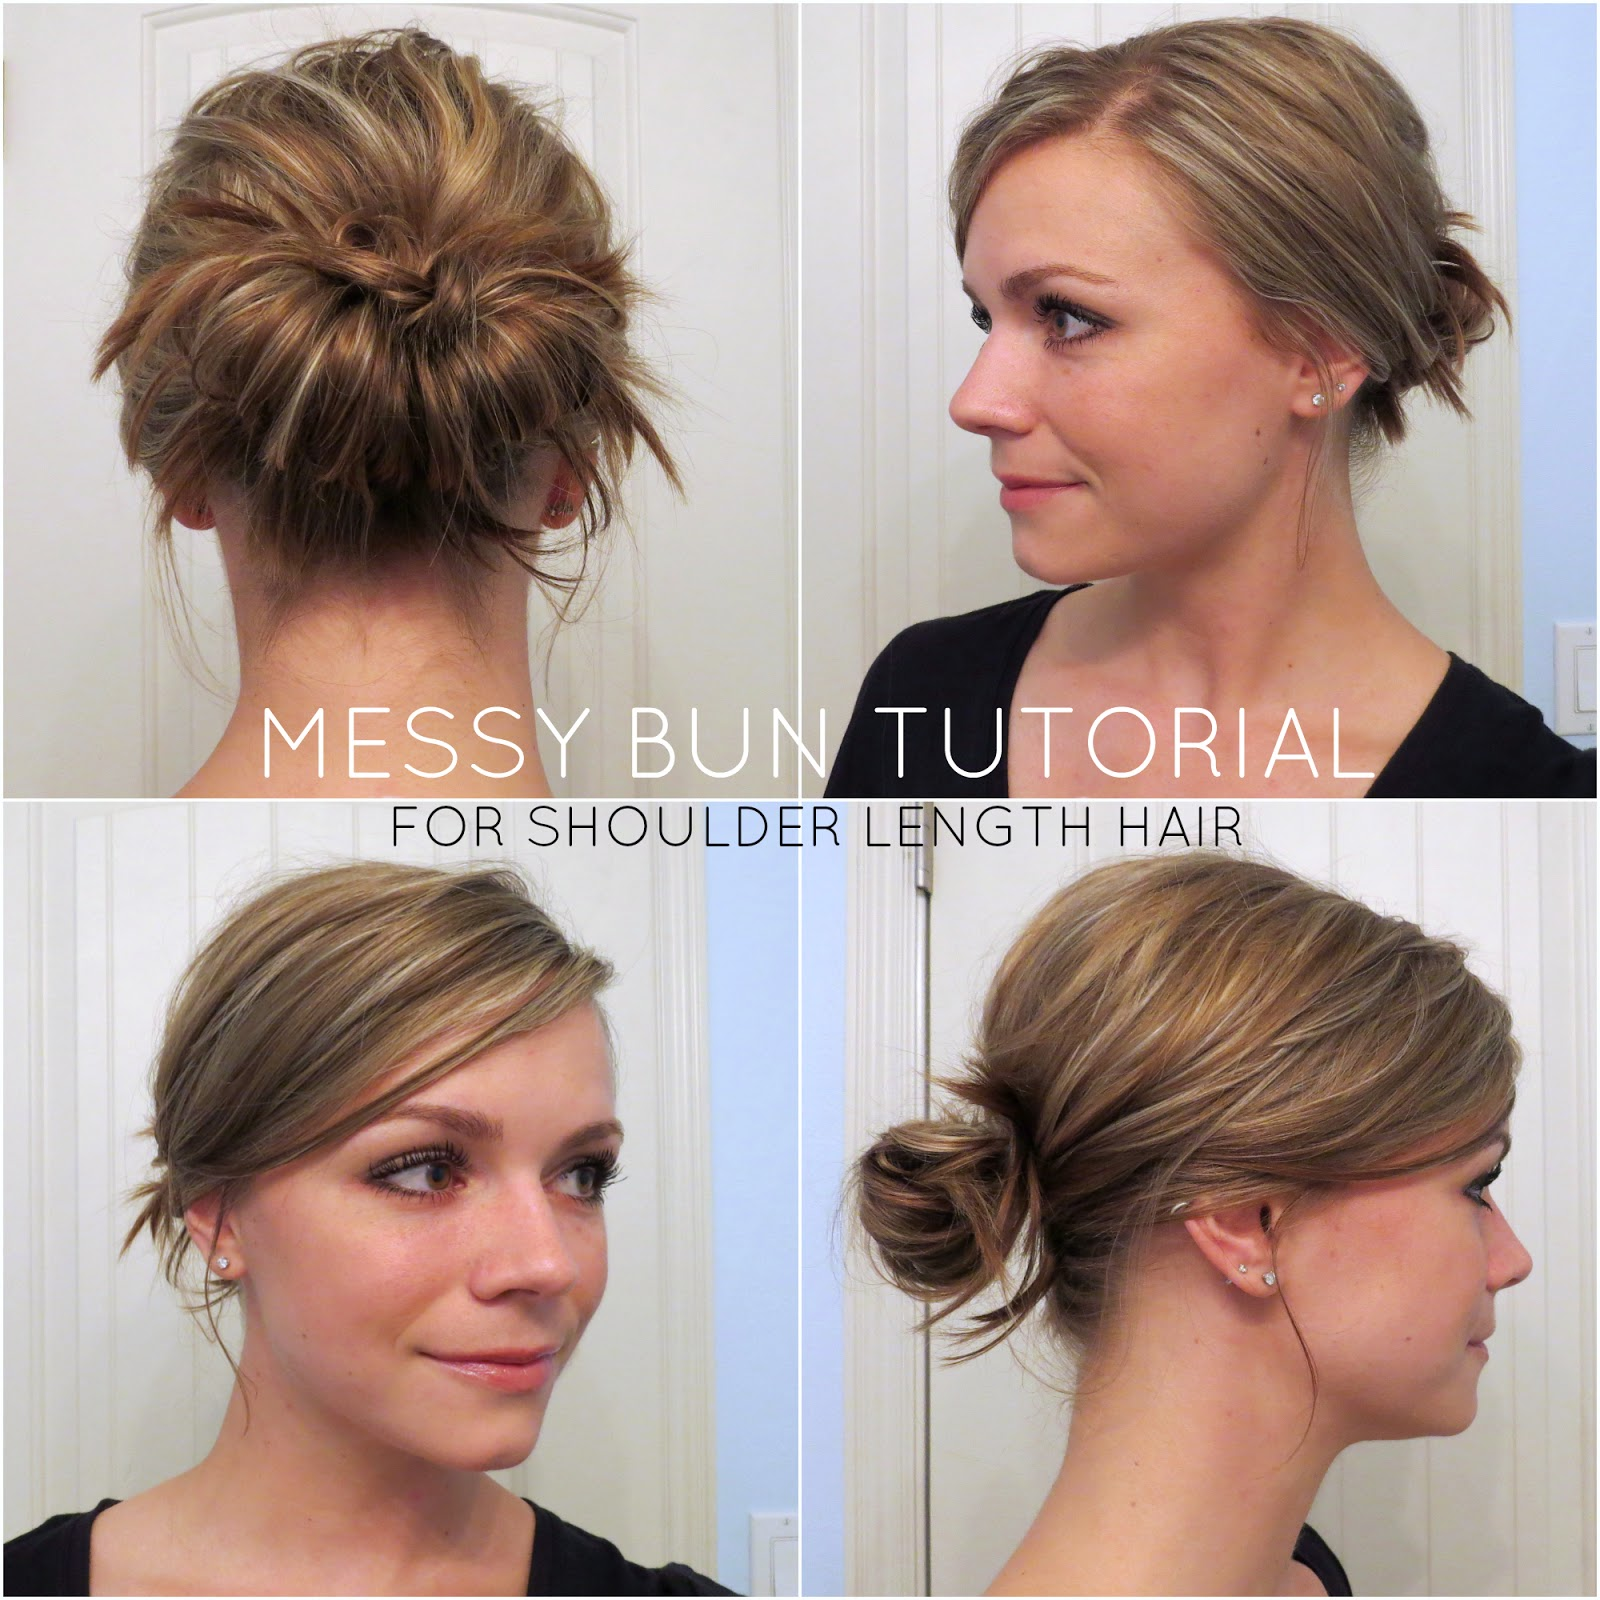 Messy Bun Tutorial for Shoulder Length Hair, Chic Messy Bun, Messy Bun for Short Hair